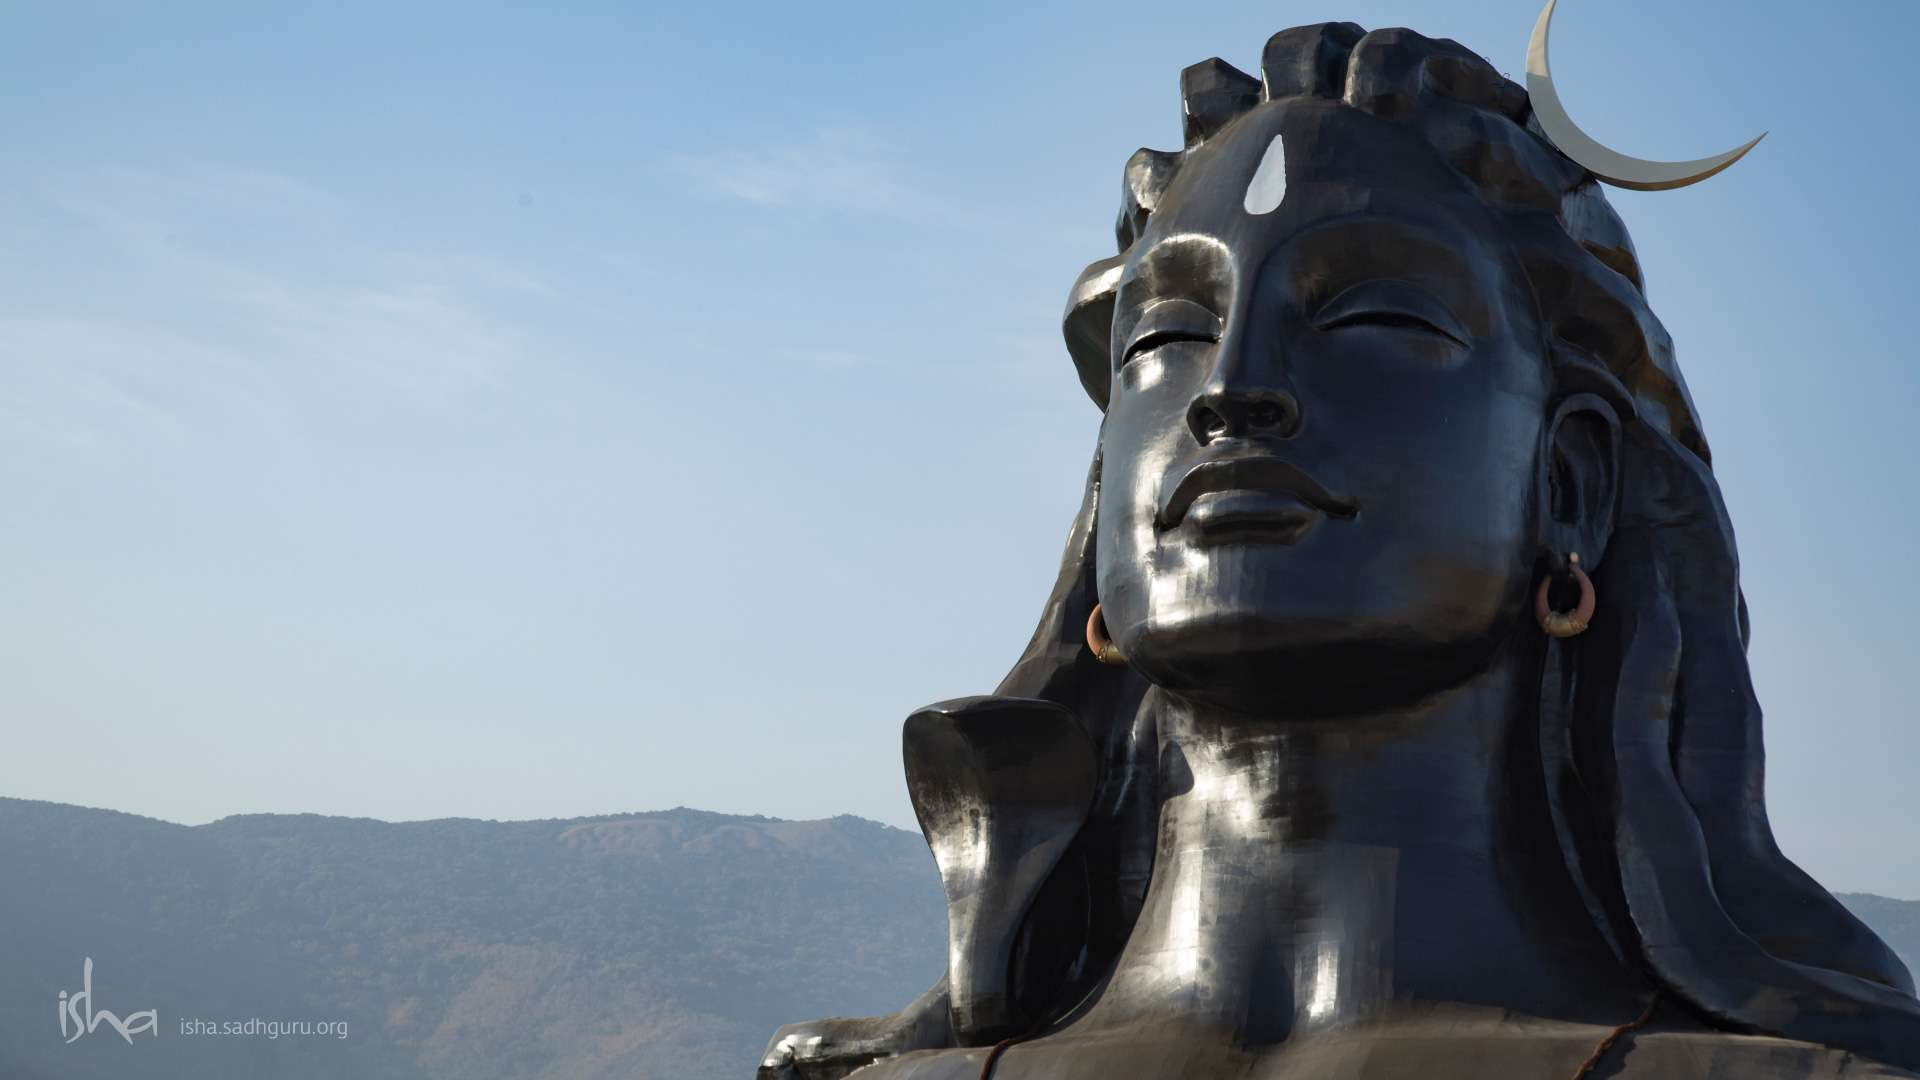 Wallpaper of Shiva - The Adiyogi with a clear sky